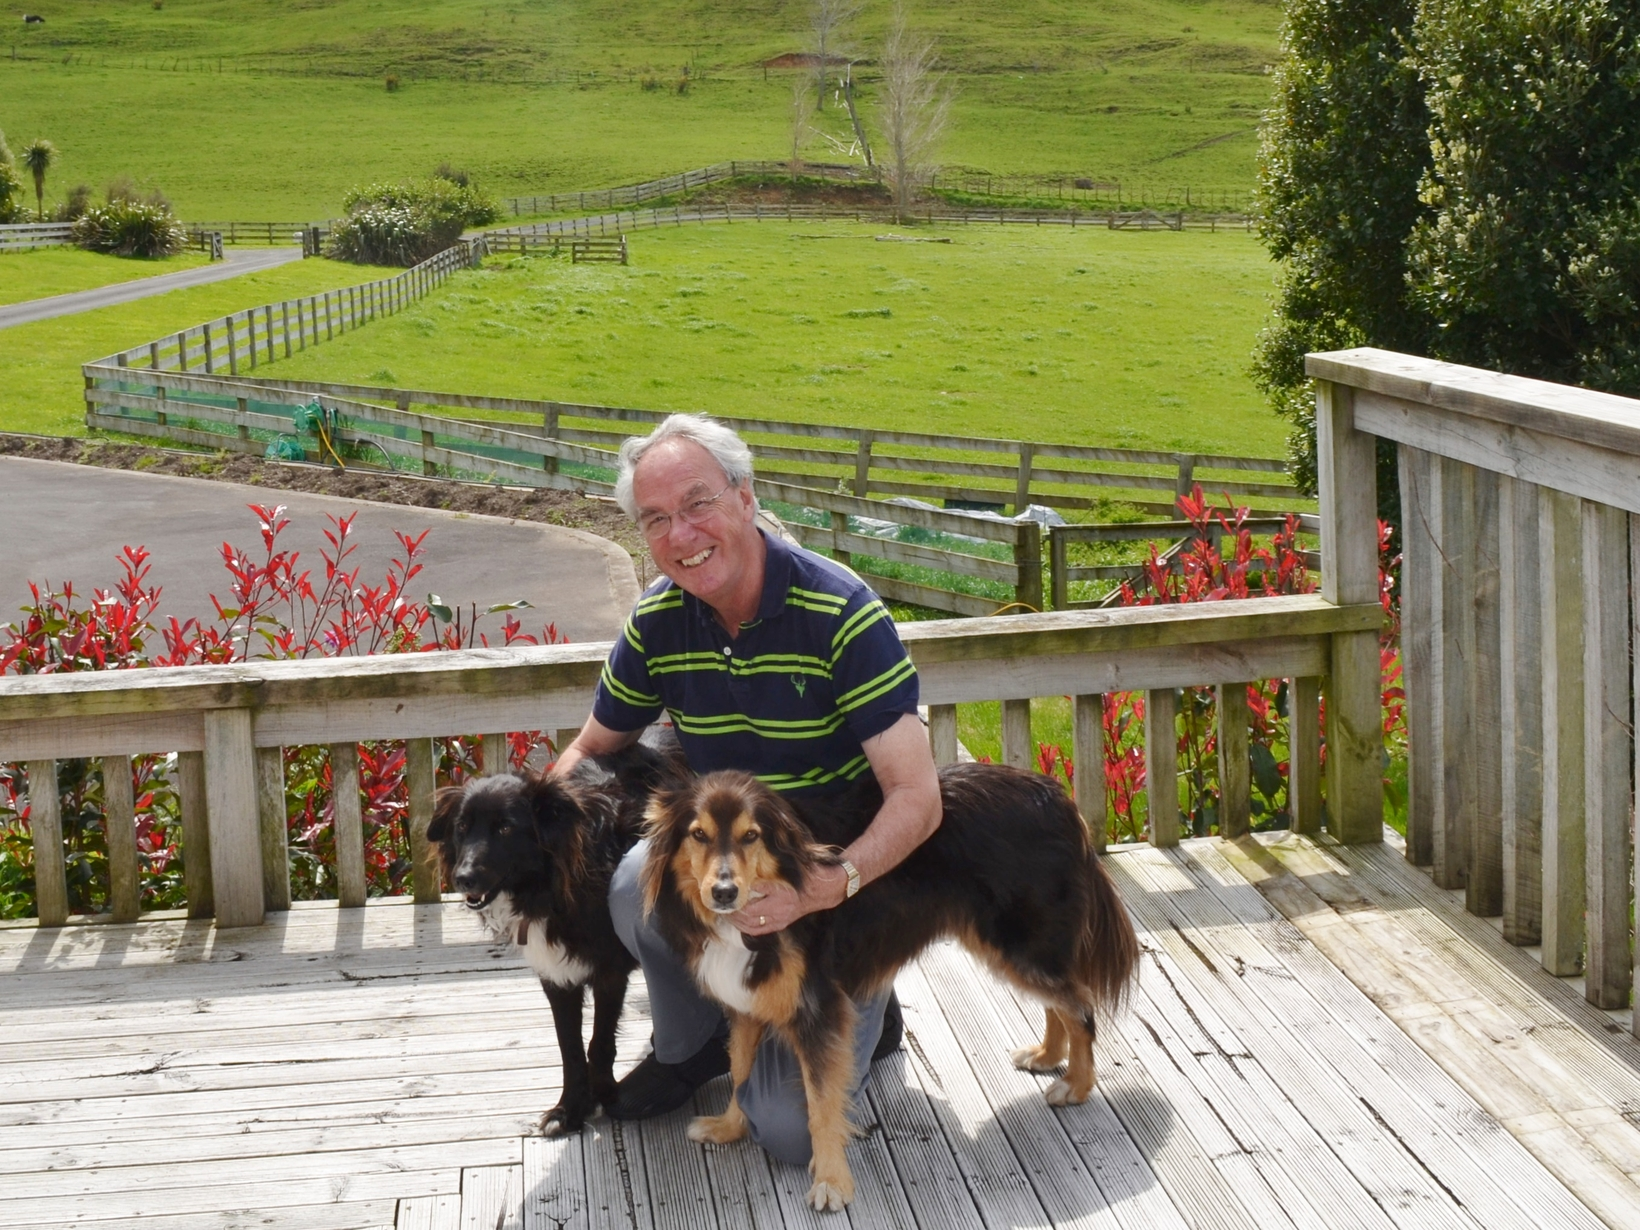 Kathy & Graeme from Feilding, New Zealand